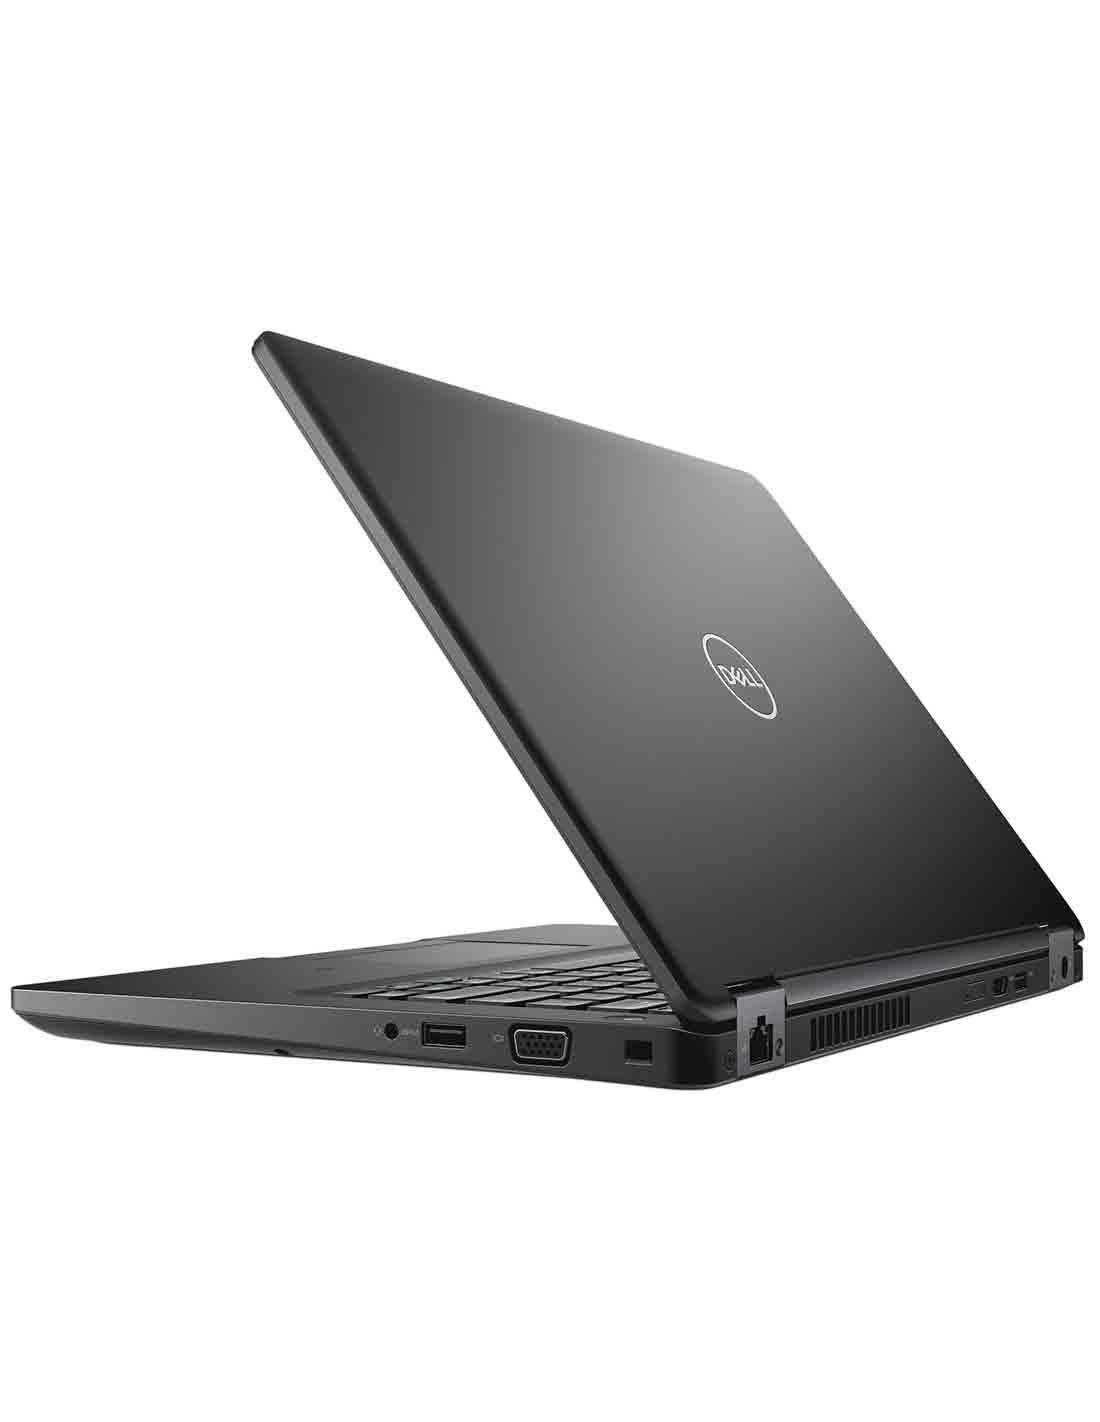 Buy Online Dell Latitude 5490 Laptop 8GB with best deal options in Dubai